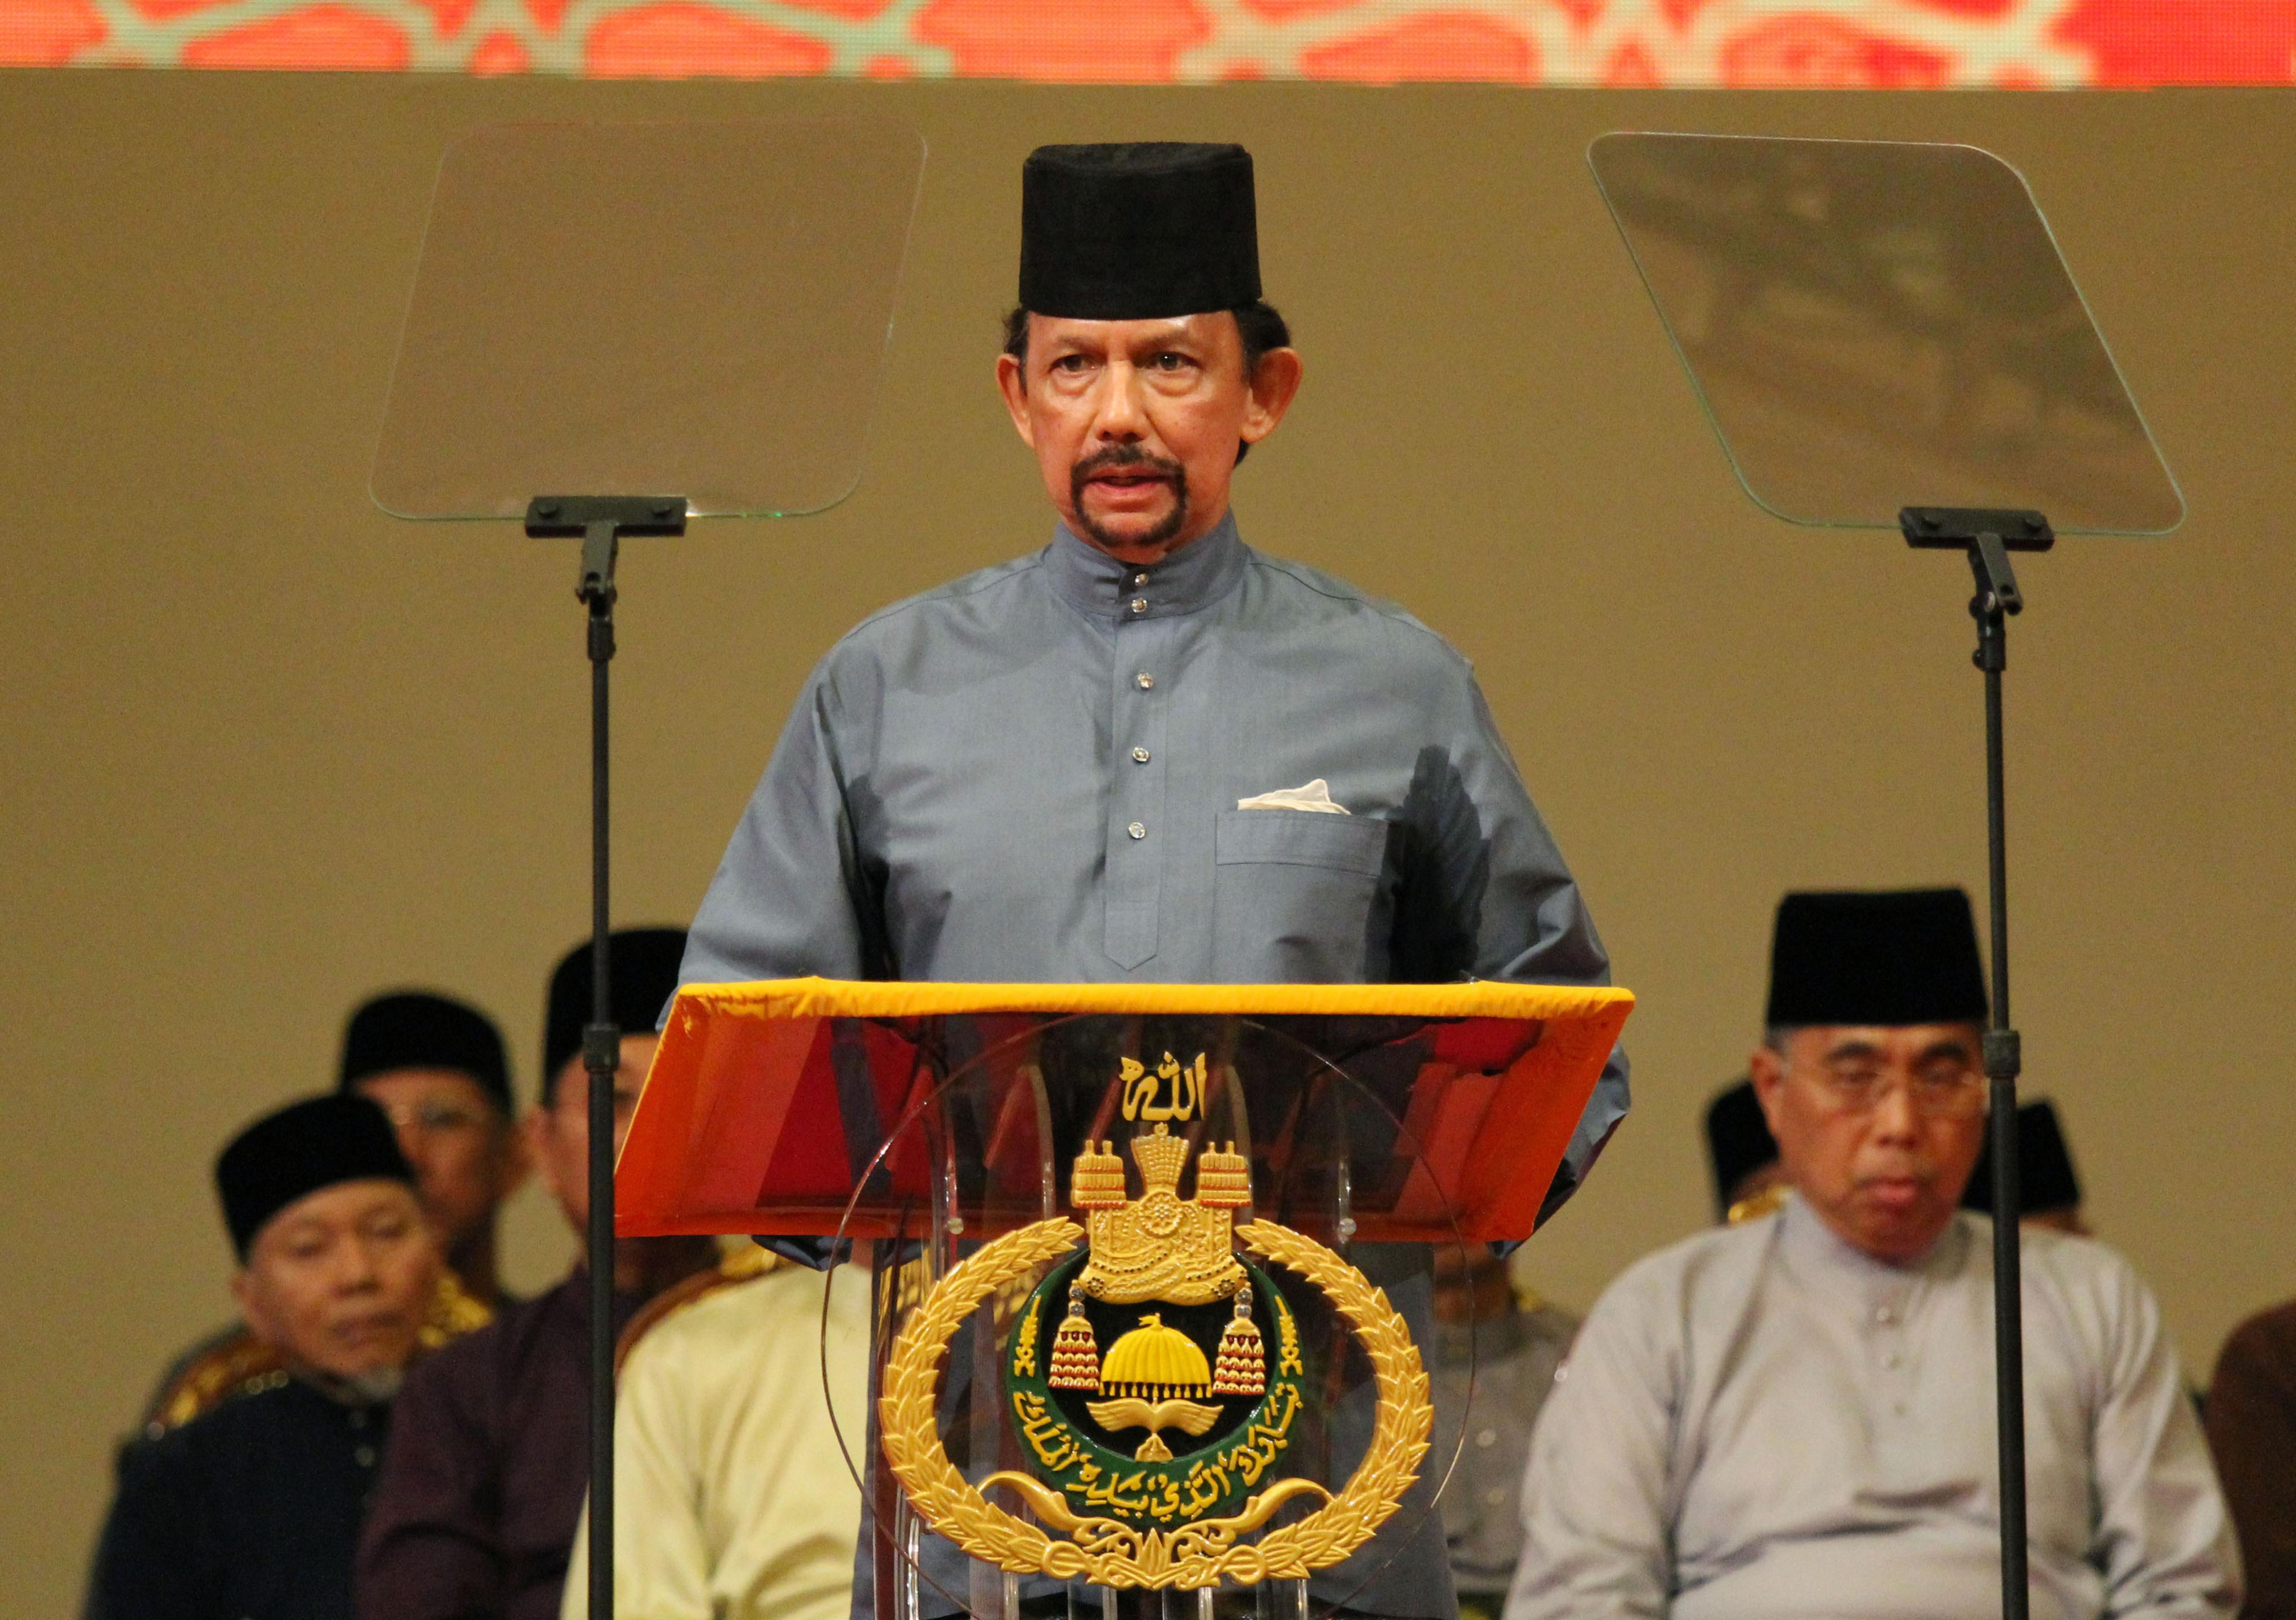 Brunei Sultan Hassanal Bolkiah announces the introduction of the sharia law penal code to the Southeast Asia country in its capital of Bandar Seri Begawan on Apr. 30, 2014.